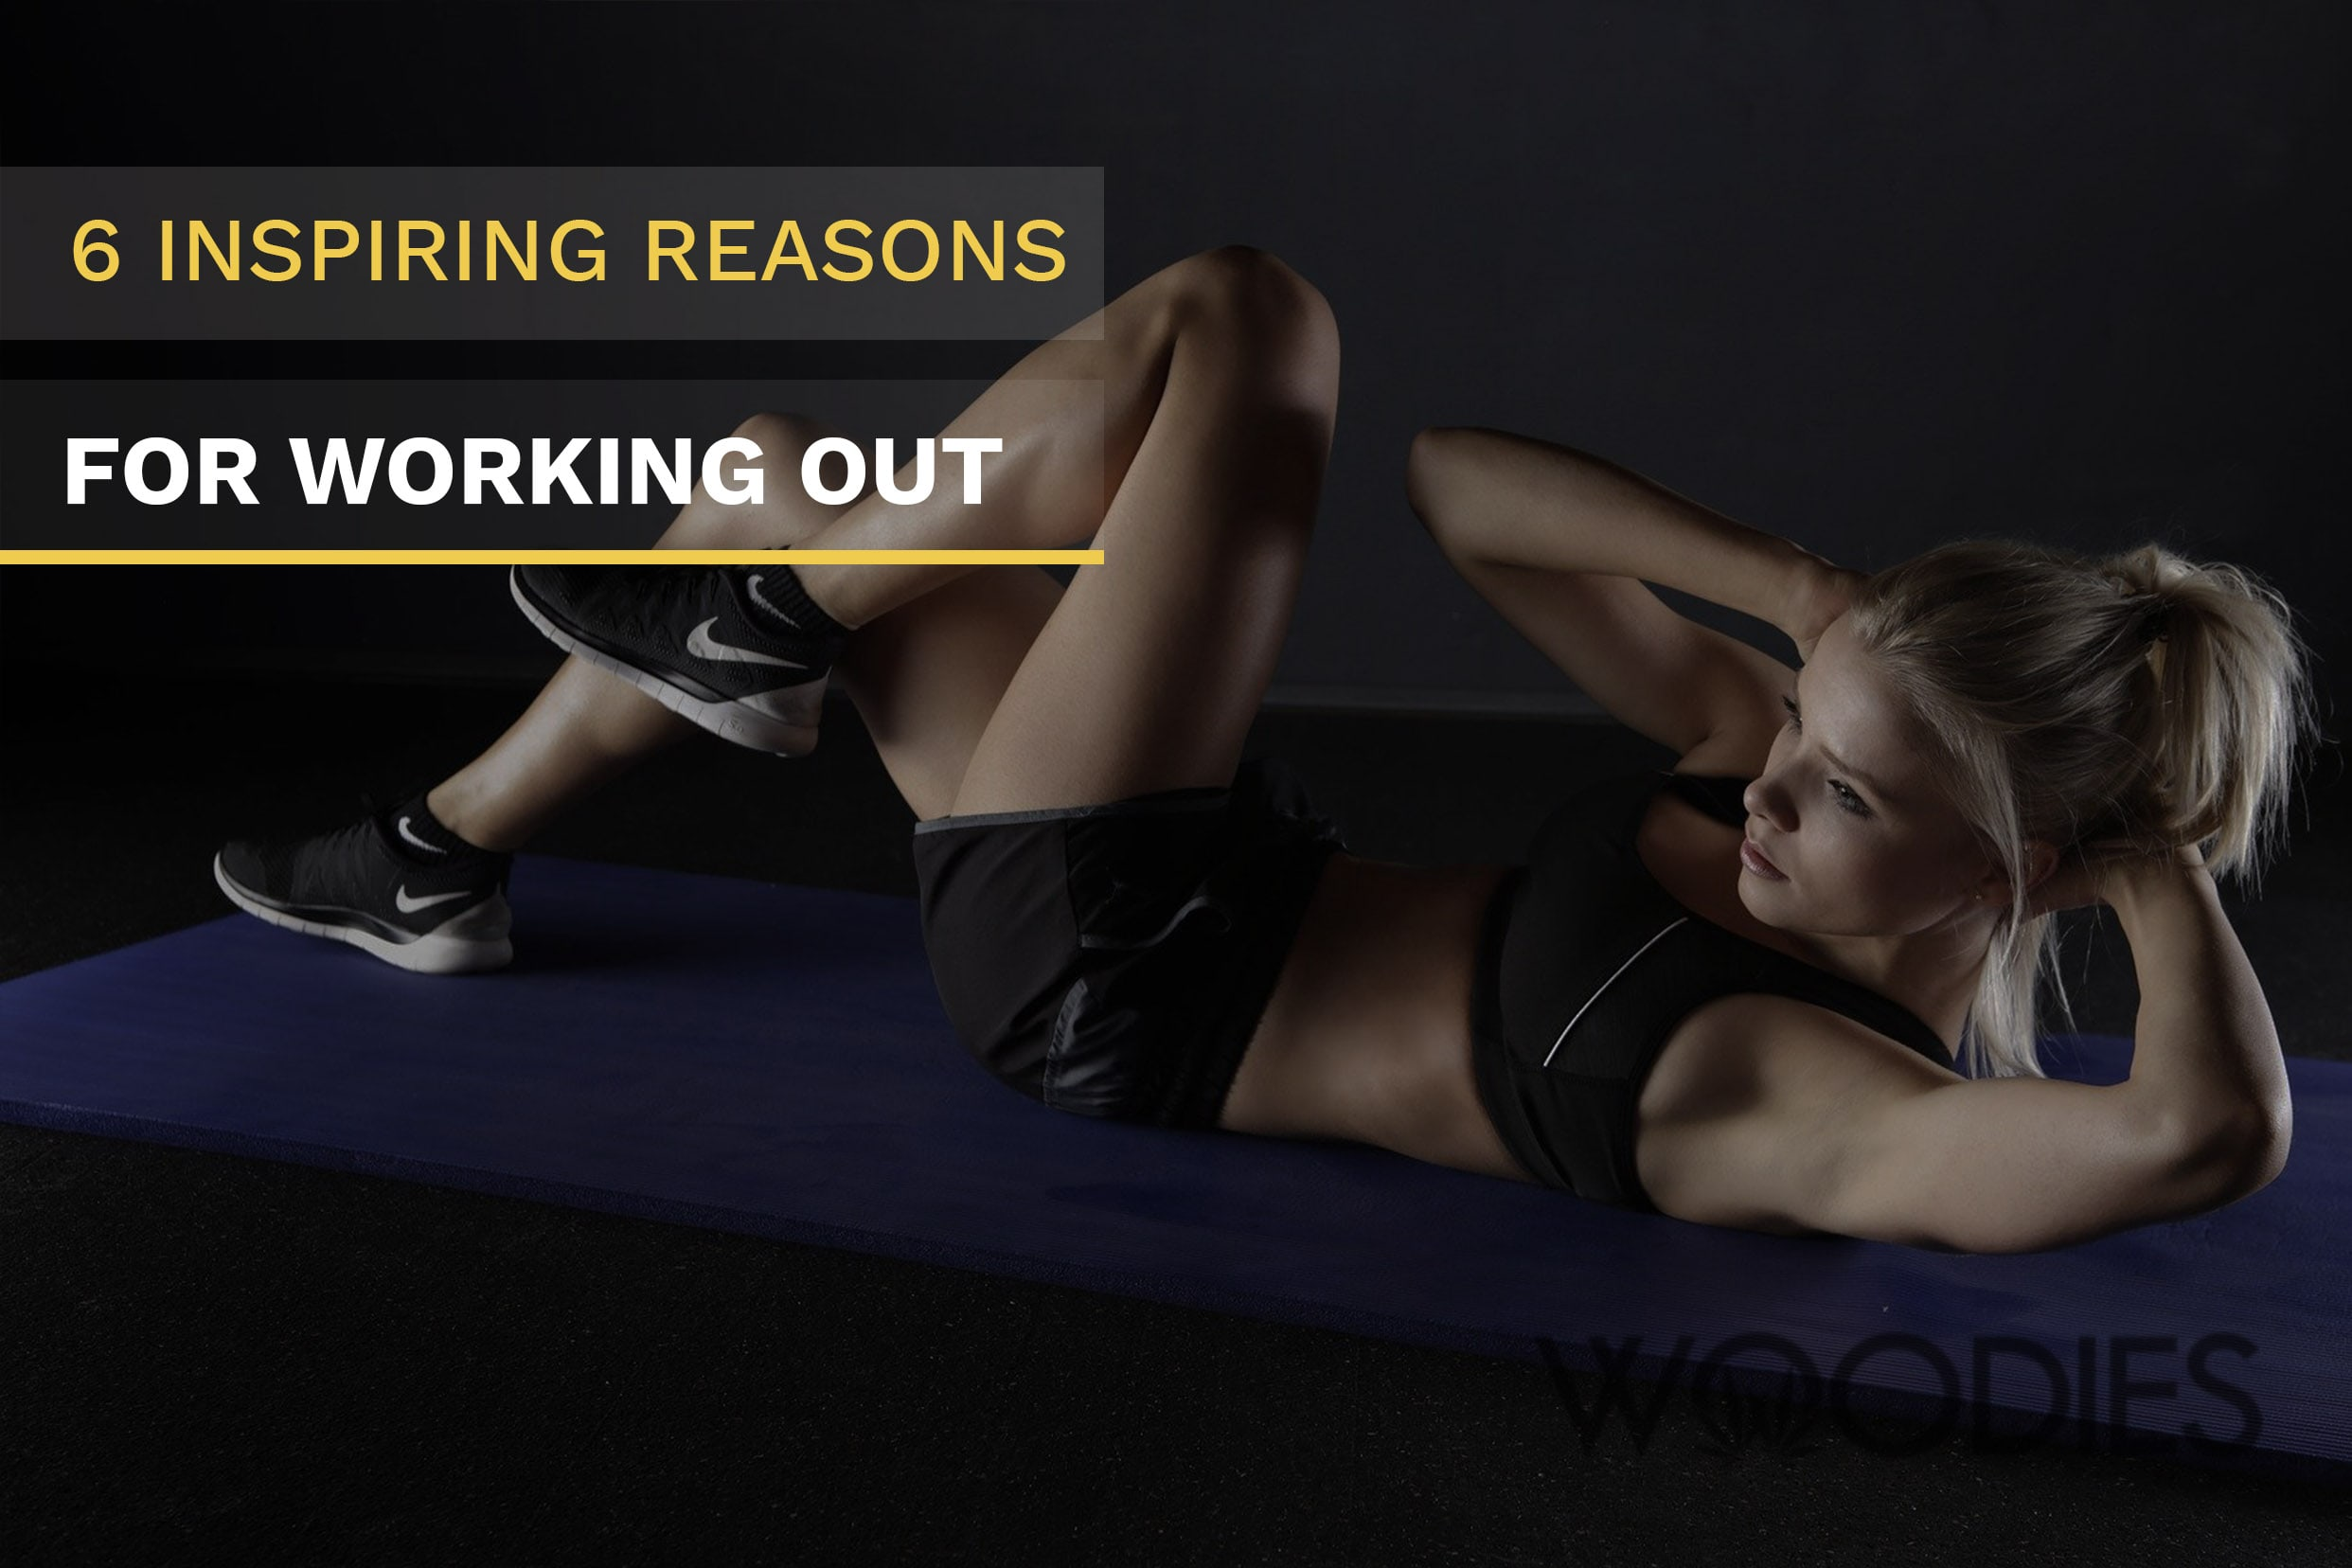 Benefits of Exercise; 6 inspiring reasons for working out